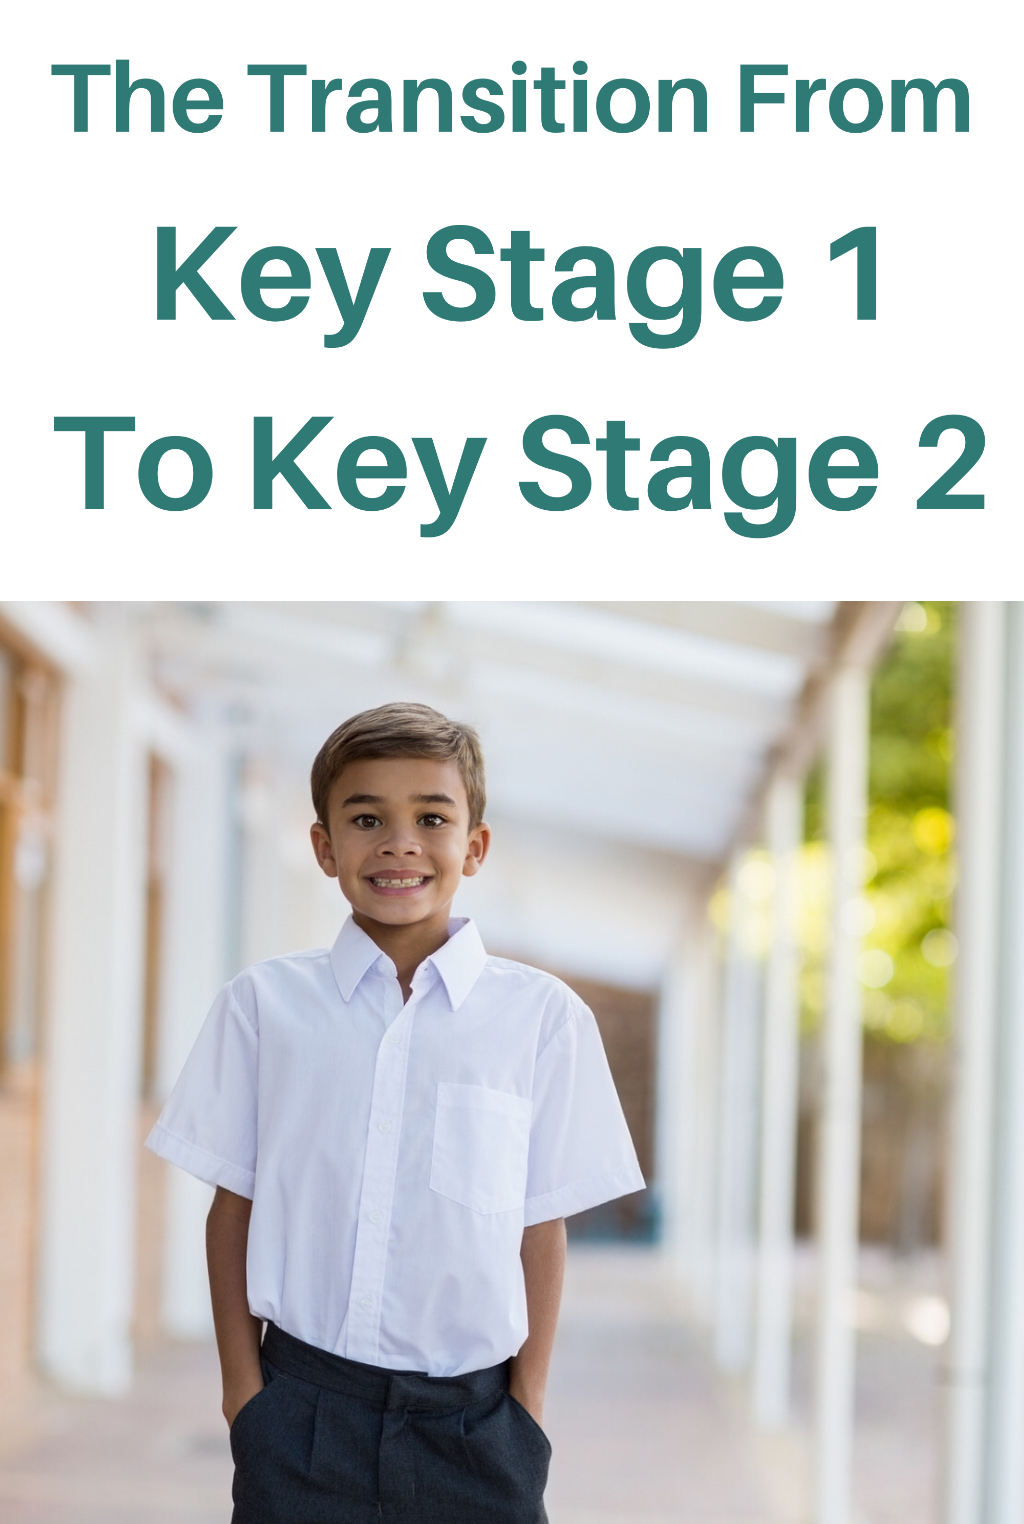 The transition from KS1 to KS2